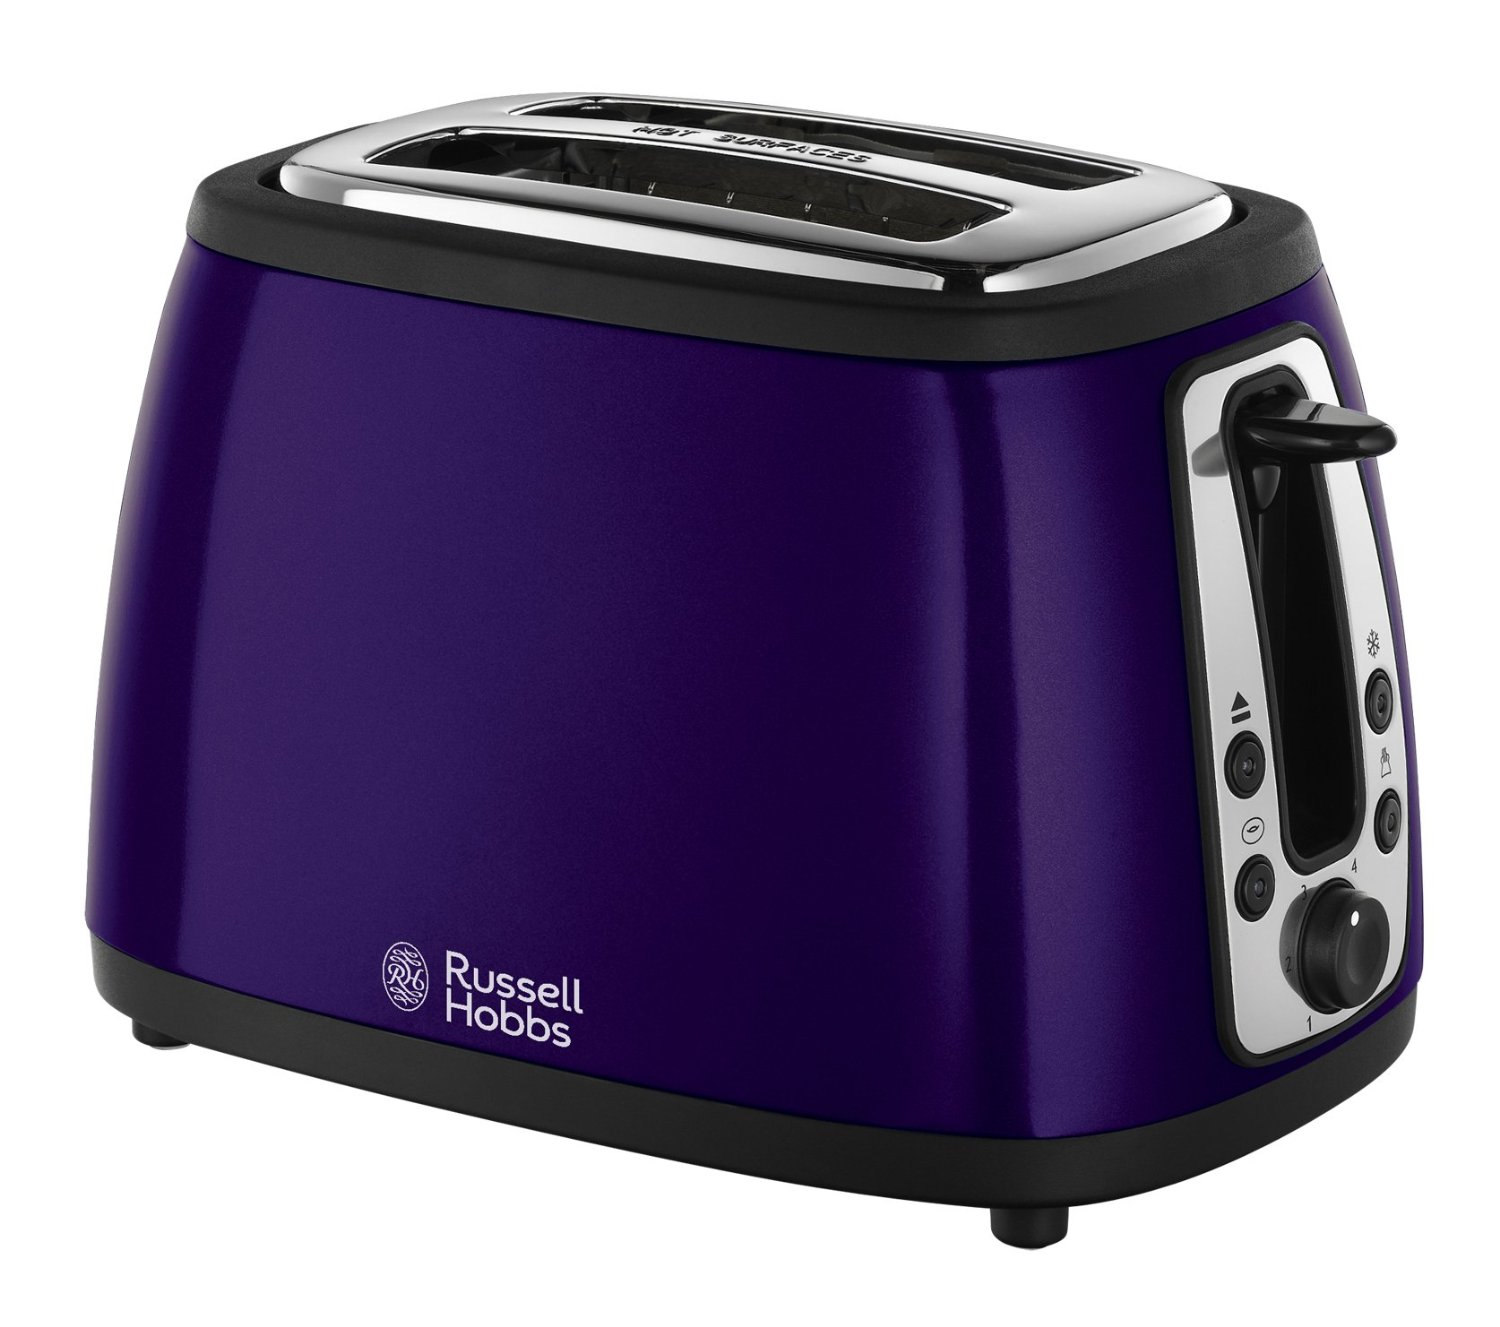 russell hobbs 19153 heritage 2 slice toaster metallic purple new ebay. Black Bedroom Furniture Sets. Home Design Ideas